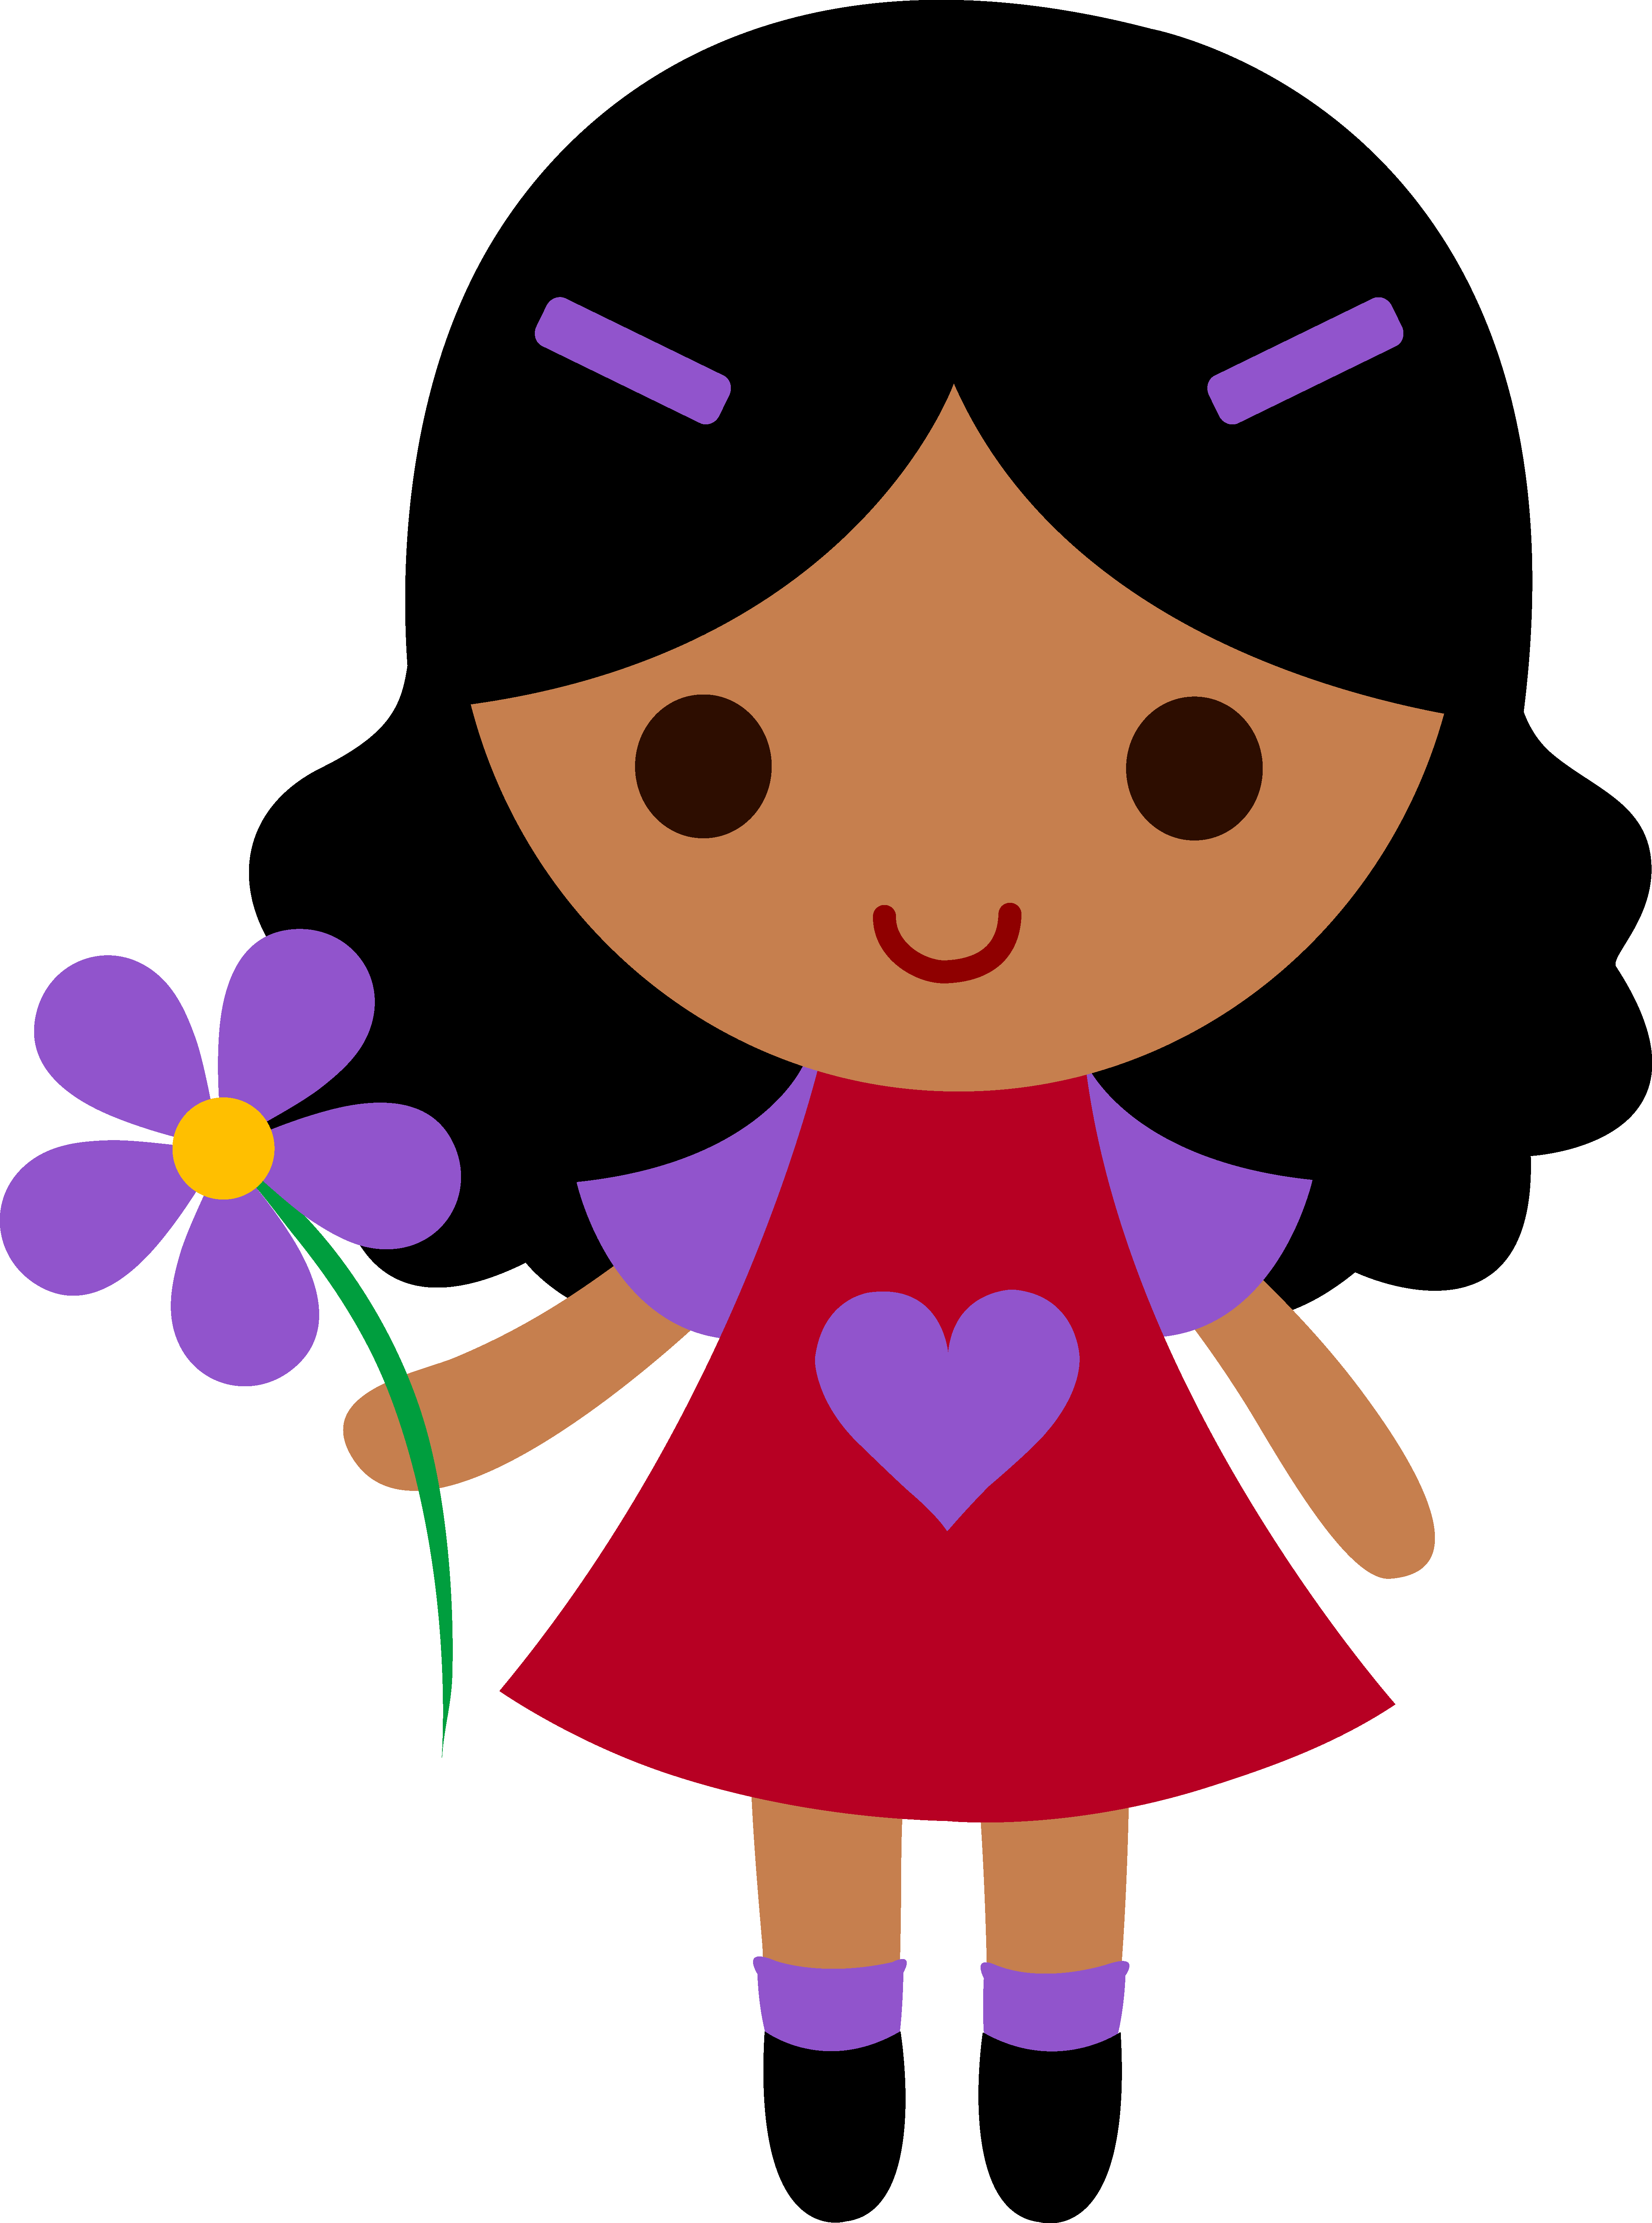 clipart freeuse download Character clipart flower. My clip art of.